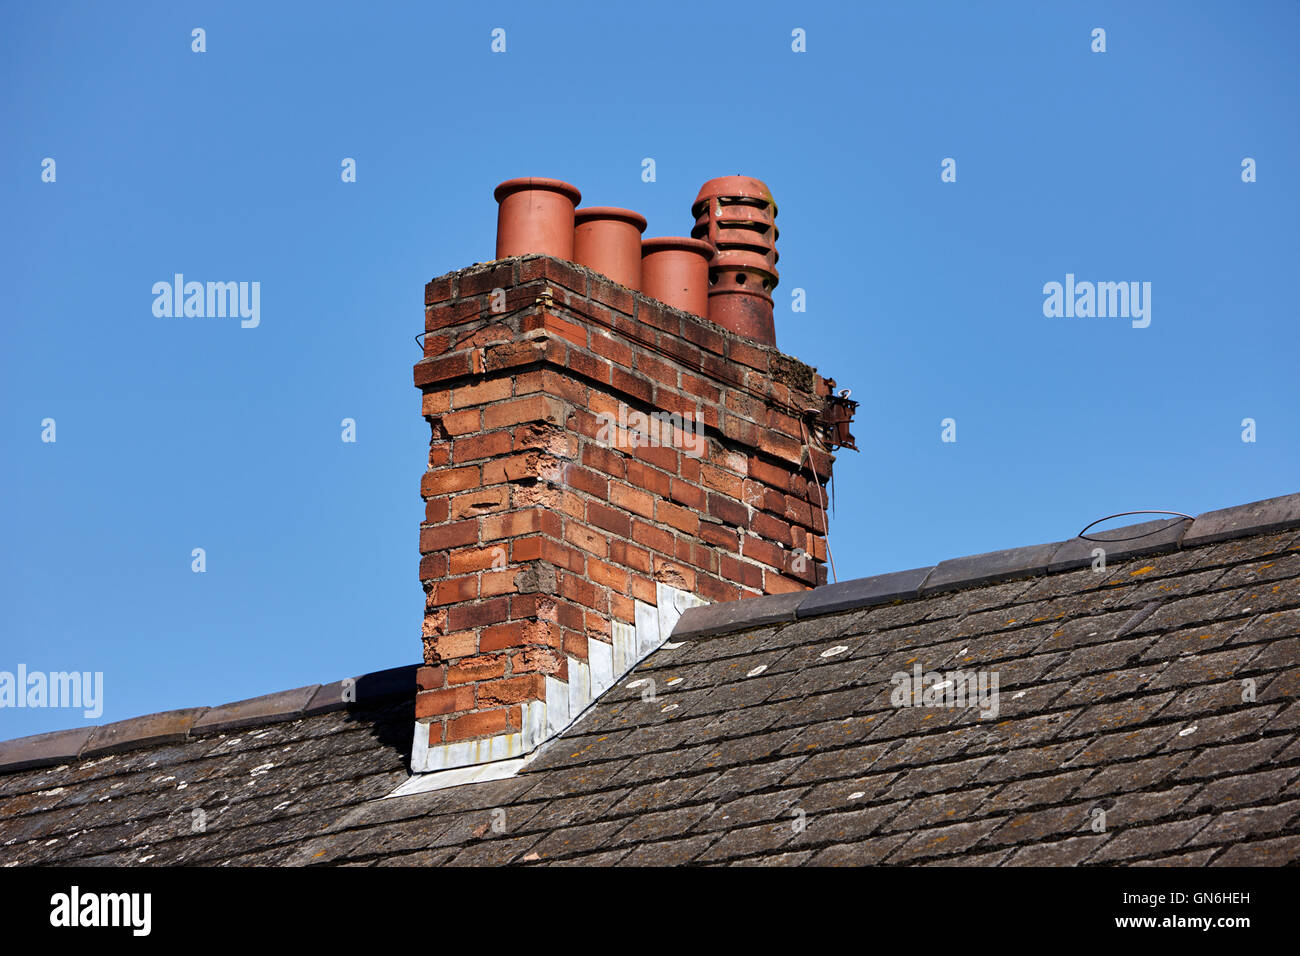 Old Victorian Chimney Stack With Pots On The Roof Of A Row